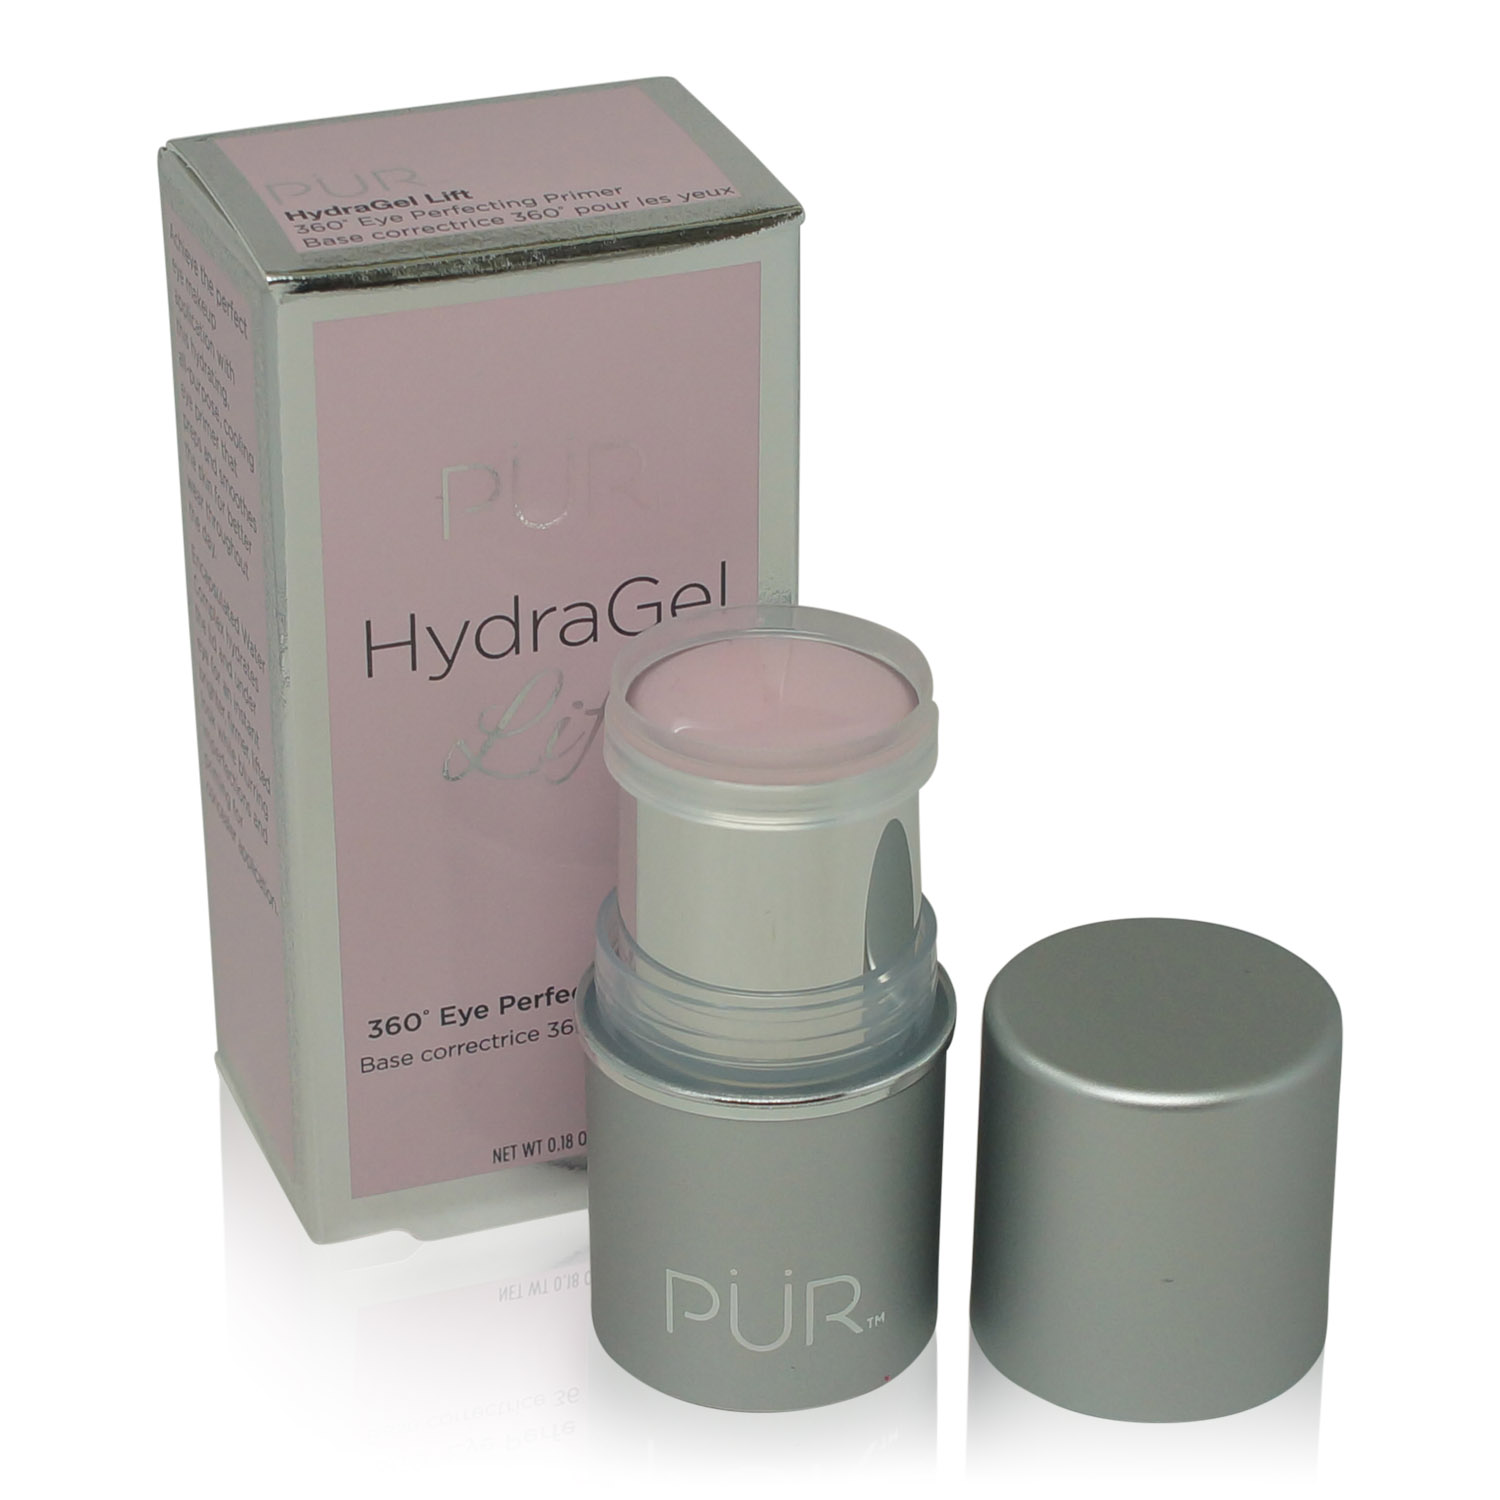 PUR HydraGel Lift Eye Perfecting Primer 0.18 Oz